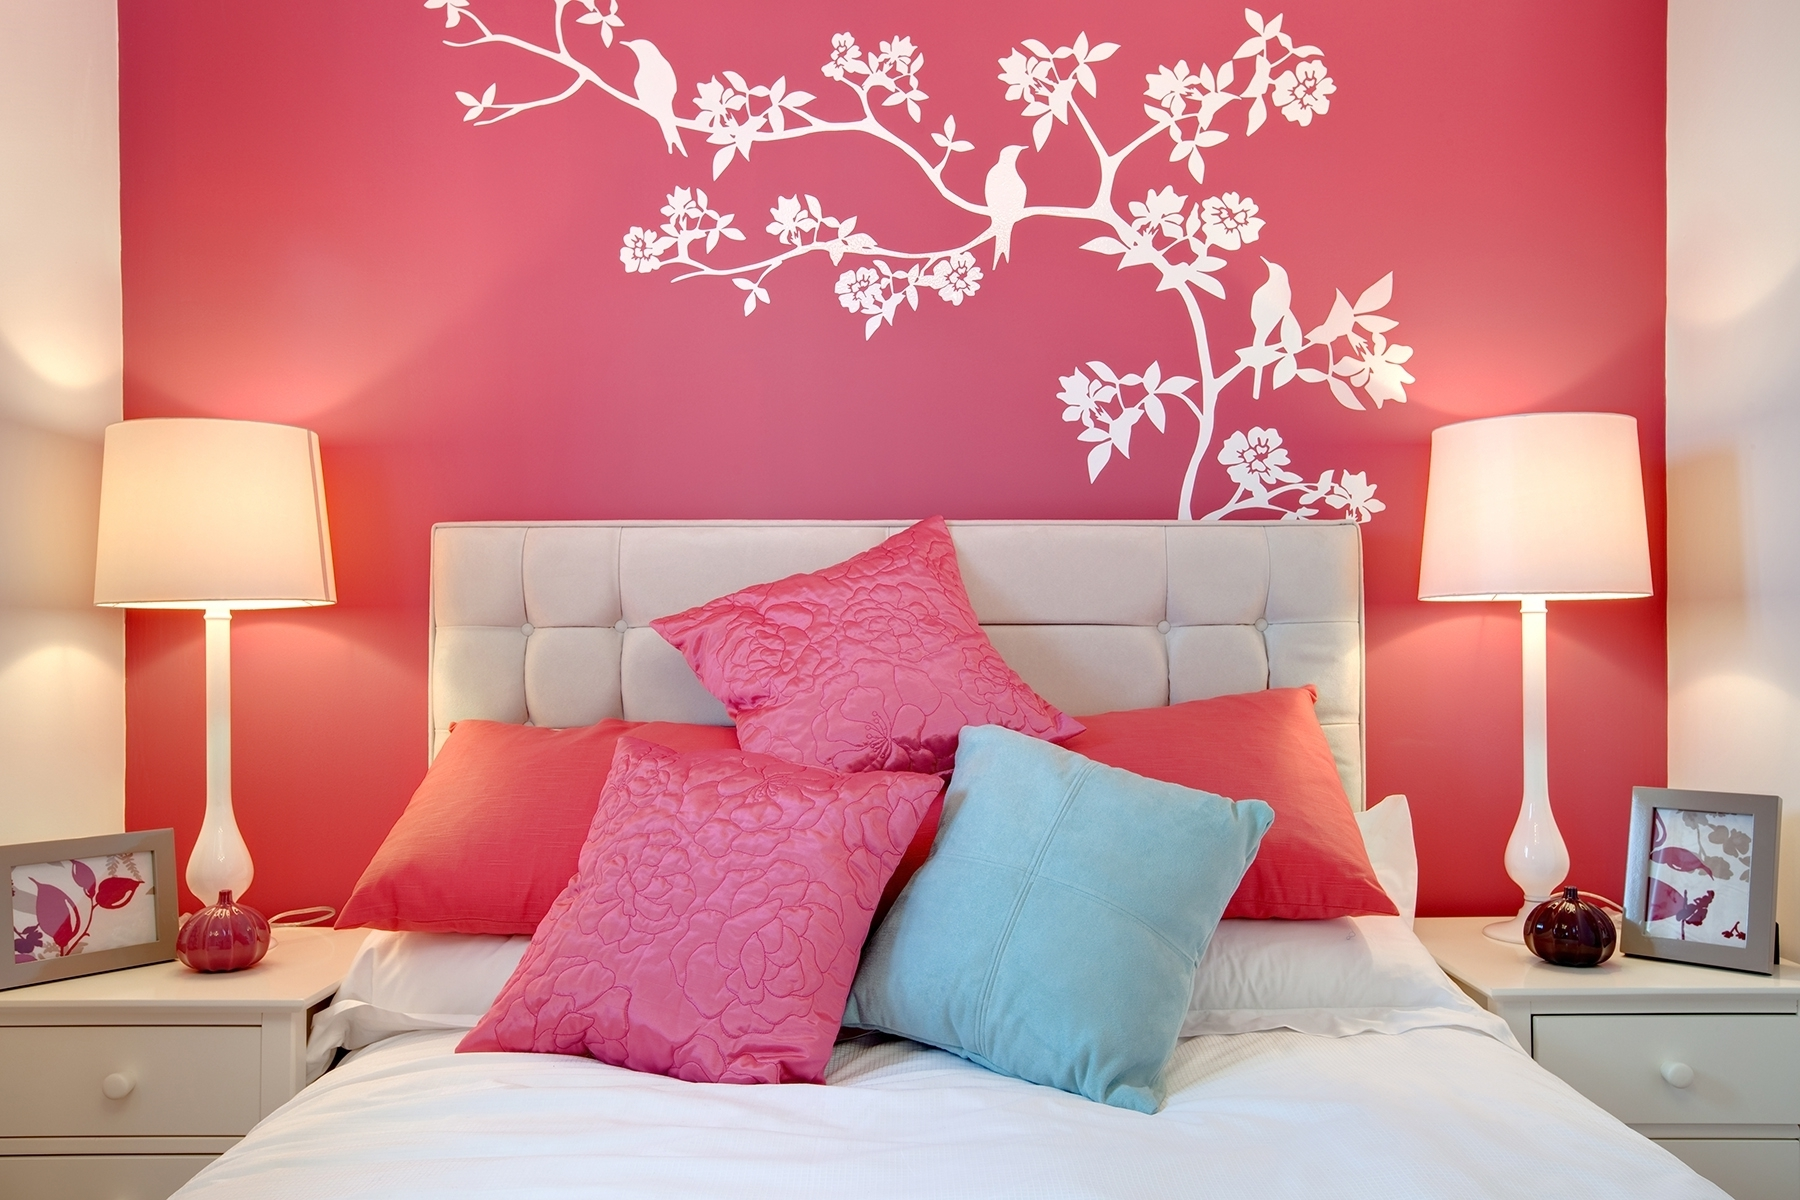 Remarkable Girls Bedroom Wall Decor Of Bedroom, Paint Designs Painting Ideas  Stunning